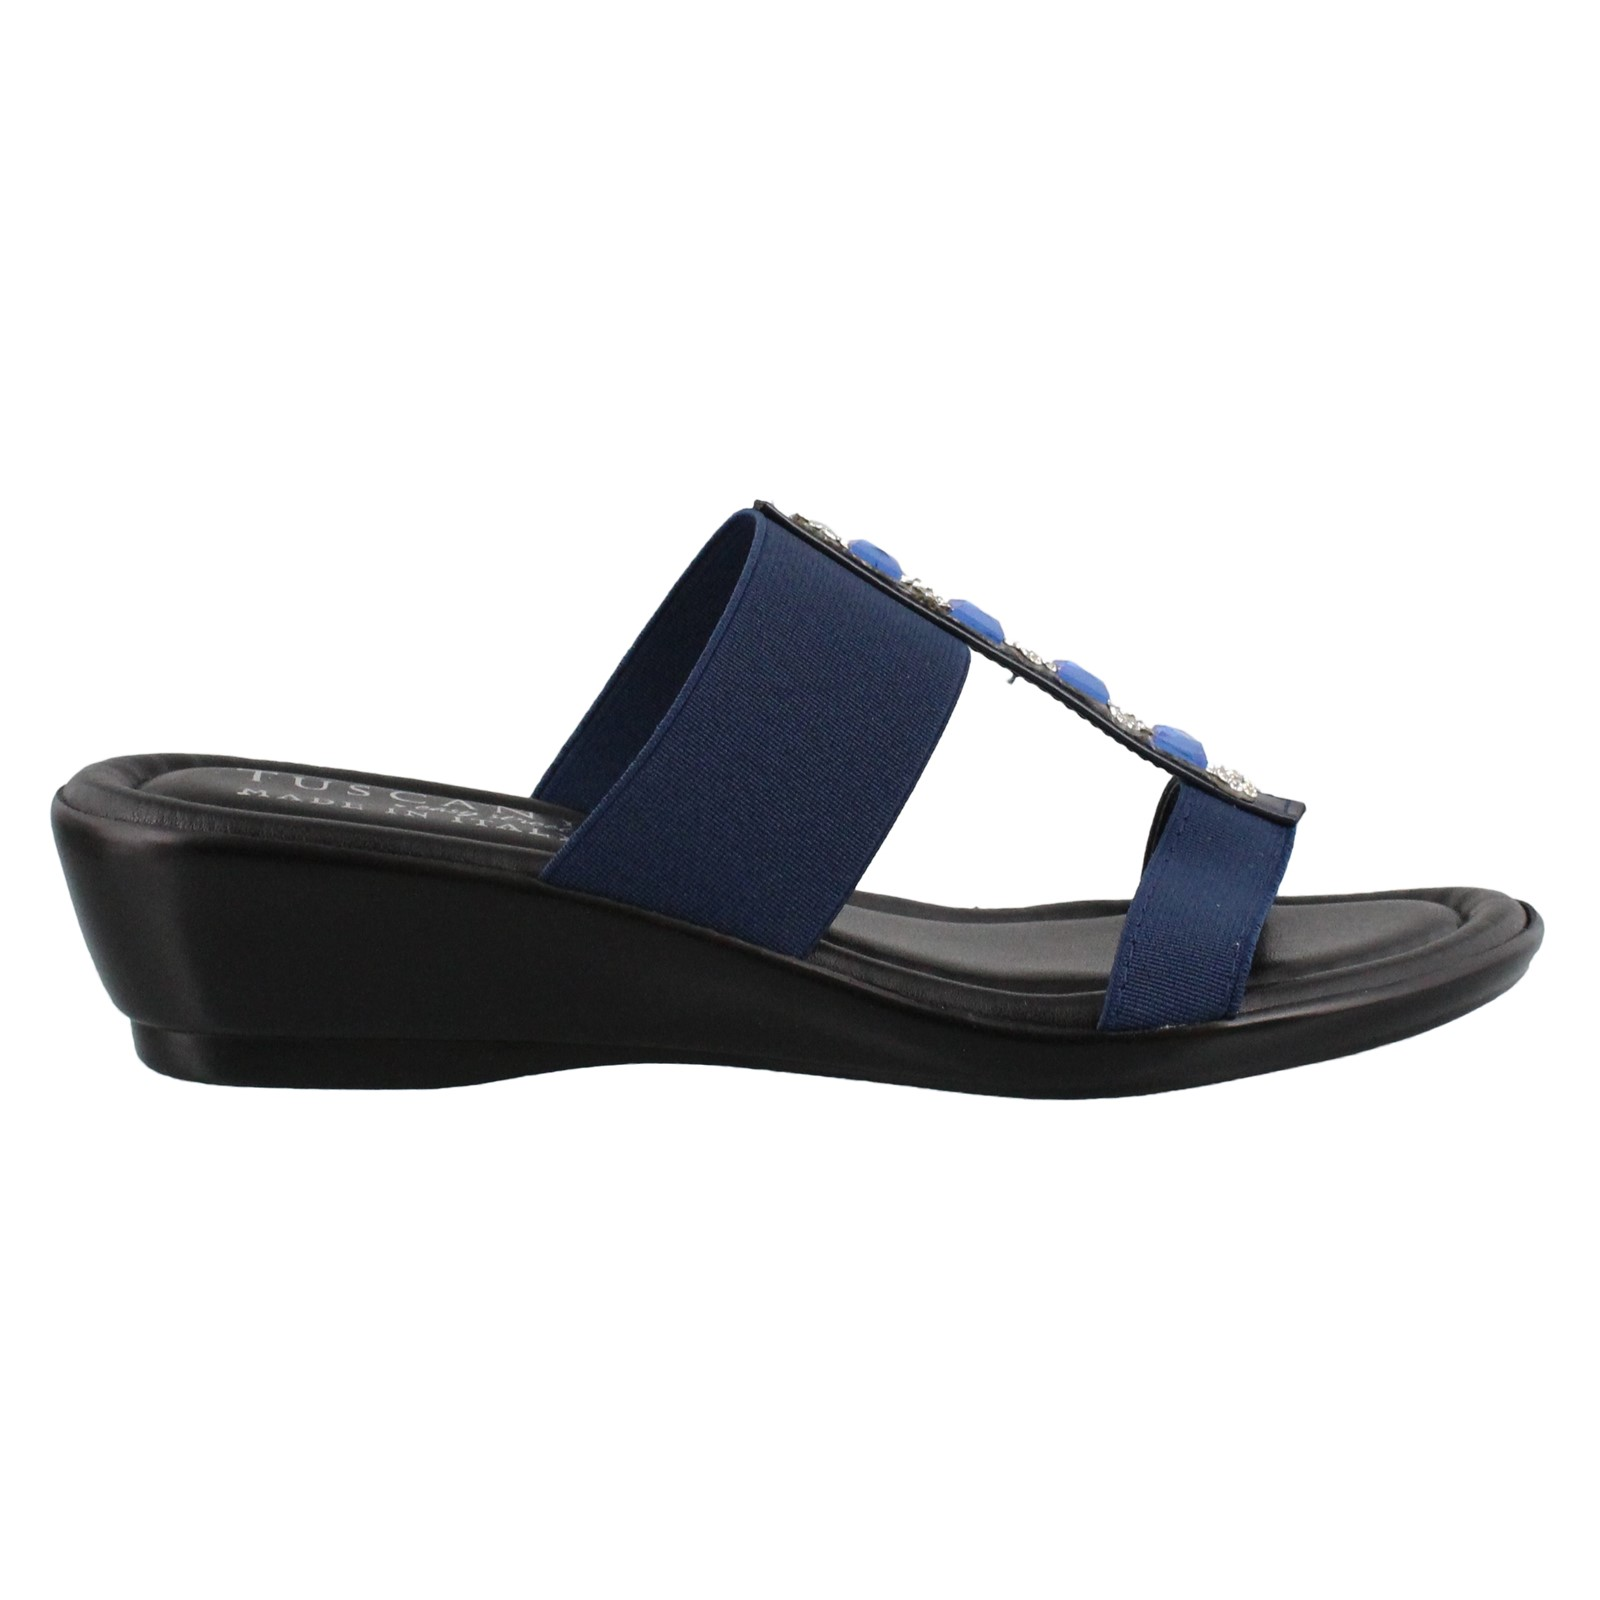 Women's Easy Street, Elba Slide Sandals